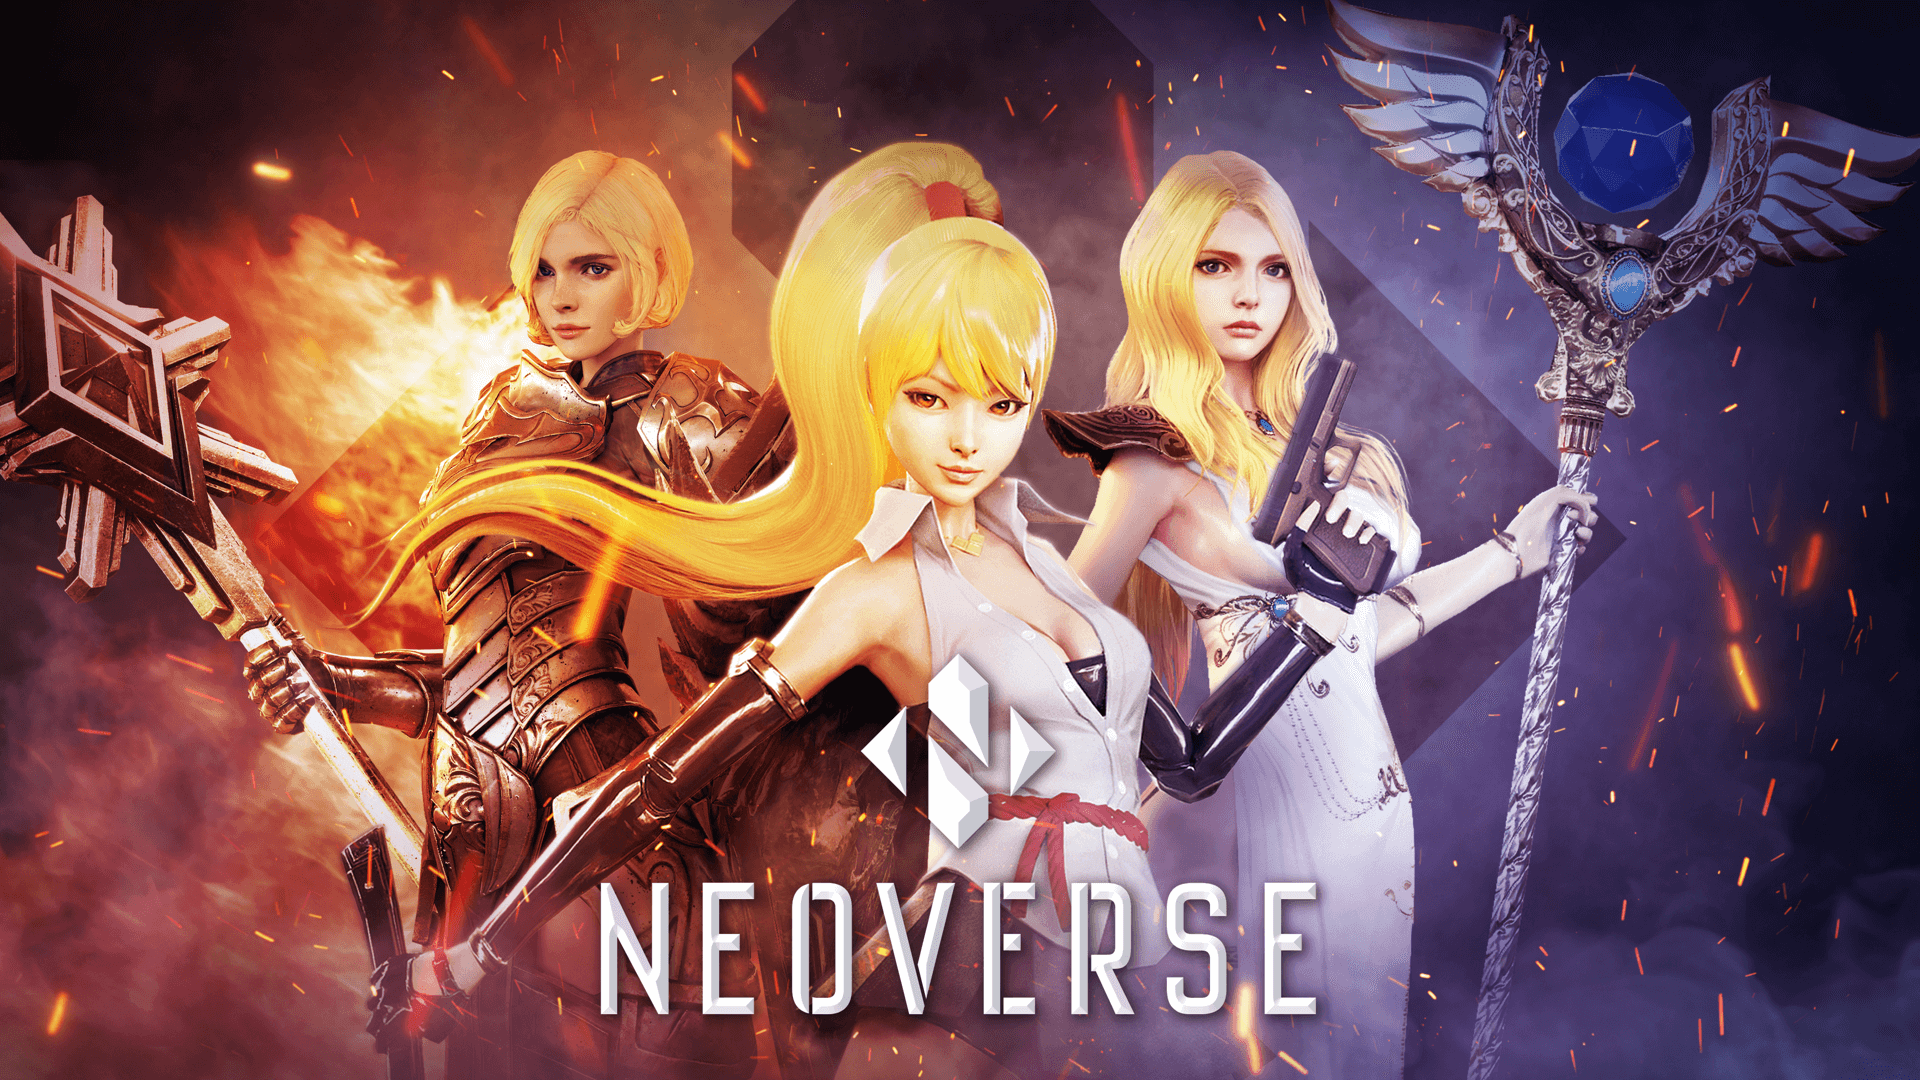 Neoverse is Out Now for Nintendo Switch